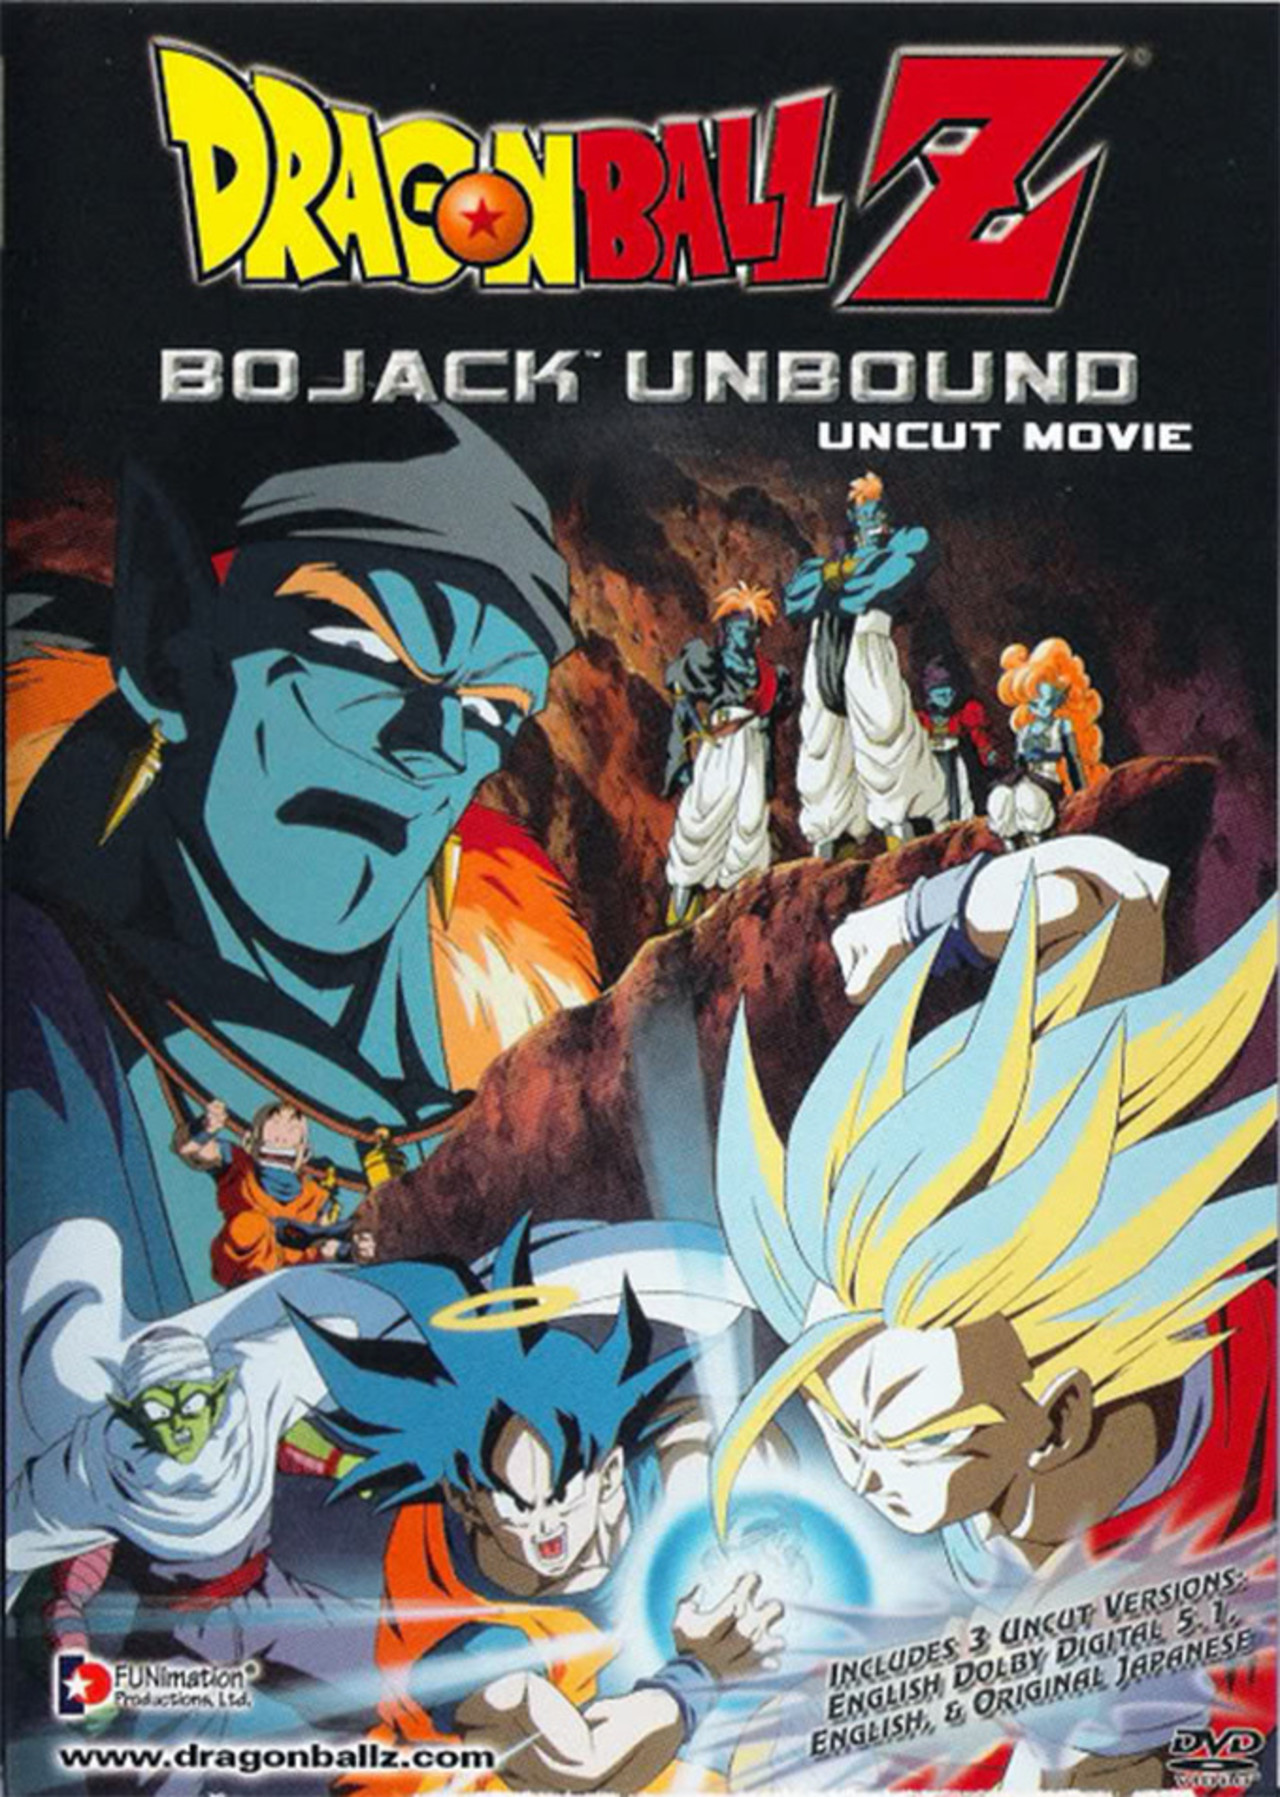 Dragon Ball Z: Bojack Unbound kapak